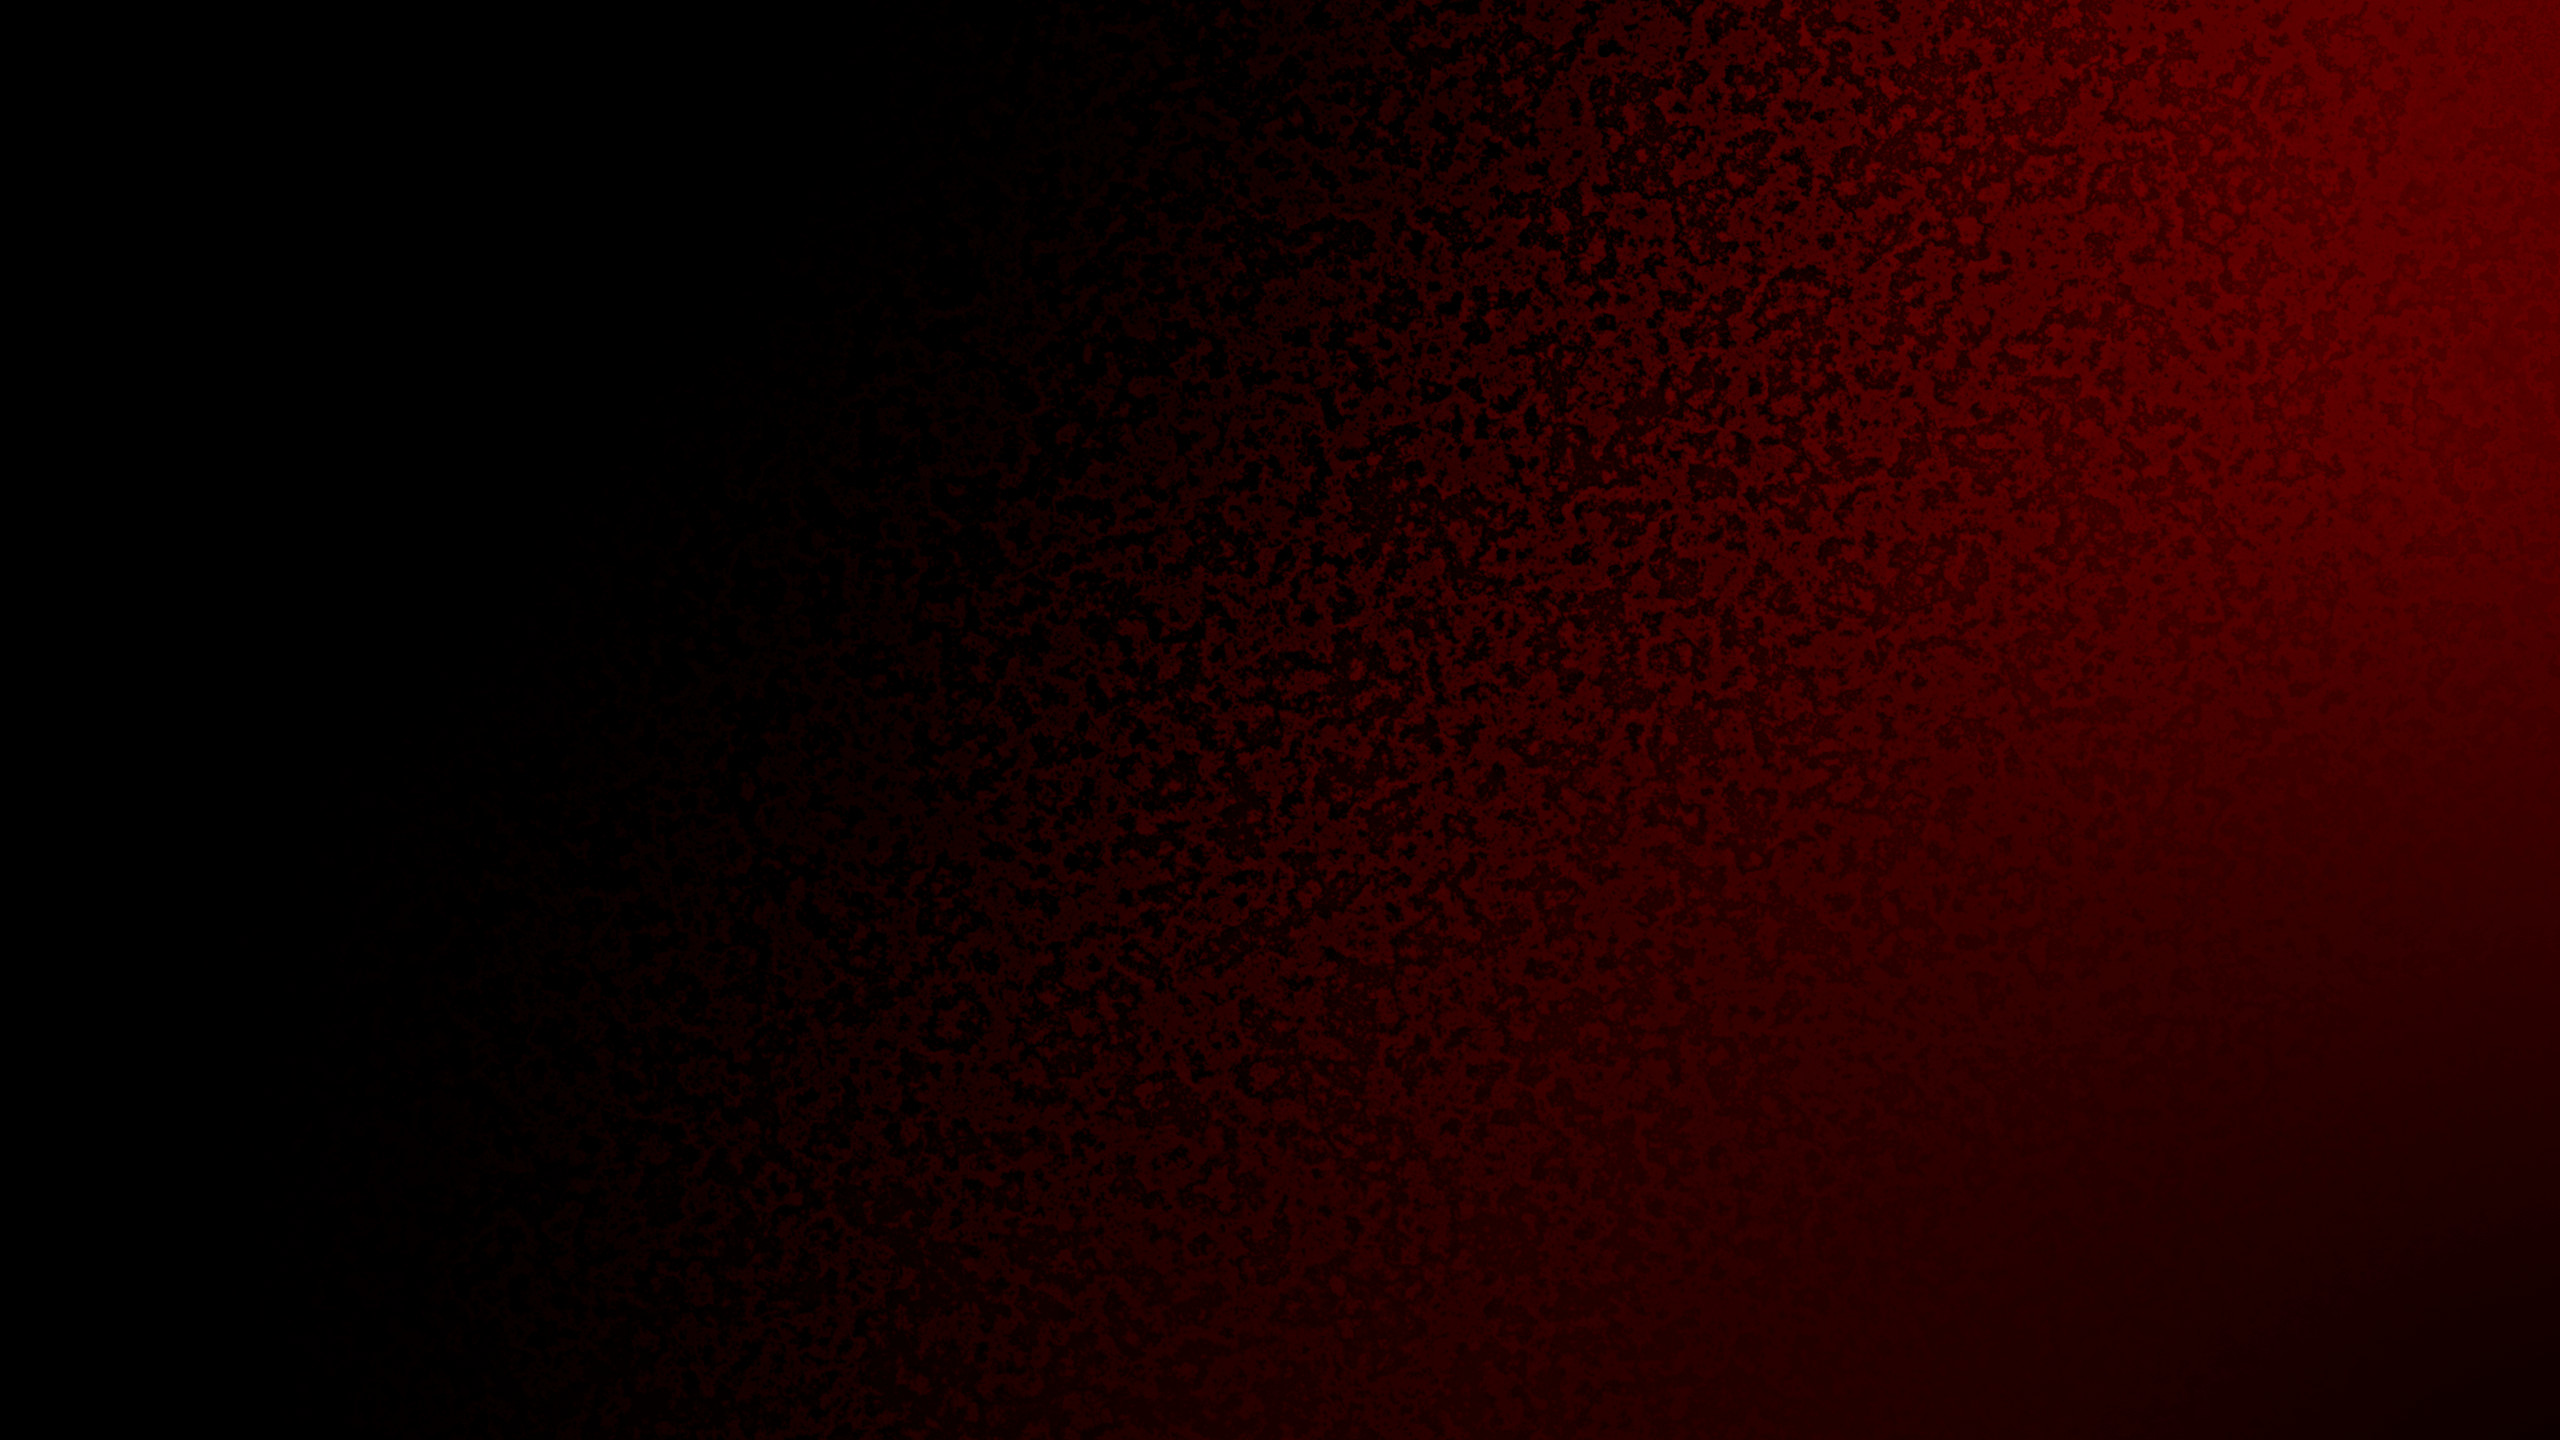 2560x1440 Red And Black Abstract Backgrounds - Wallpaper Cave